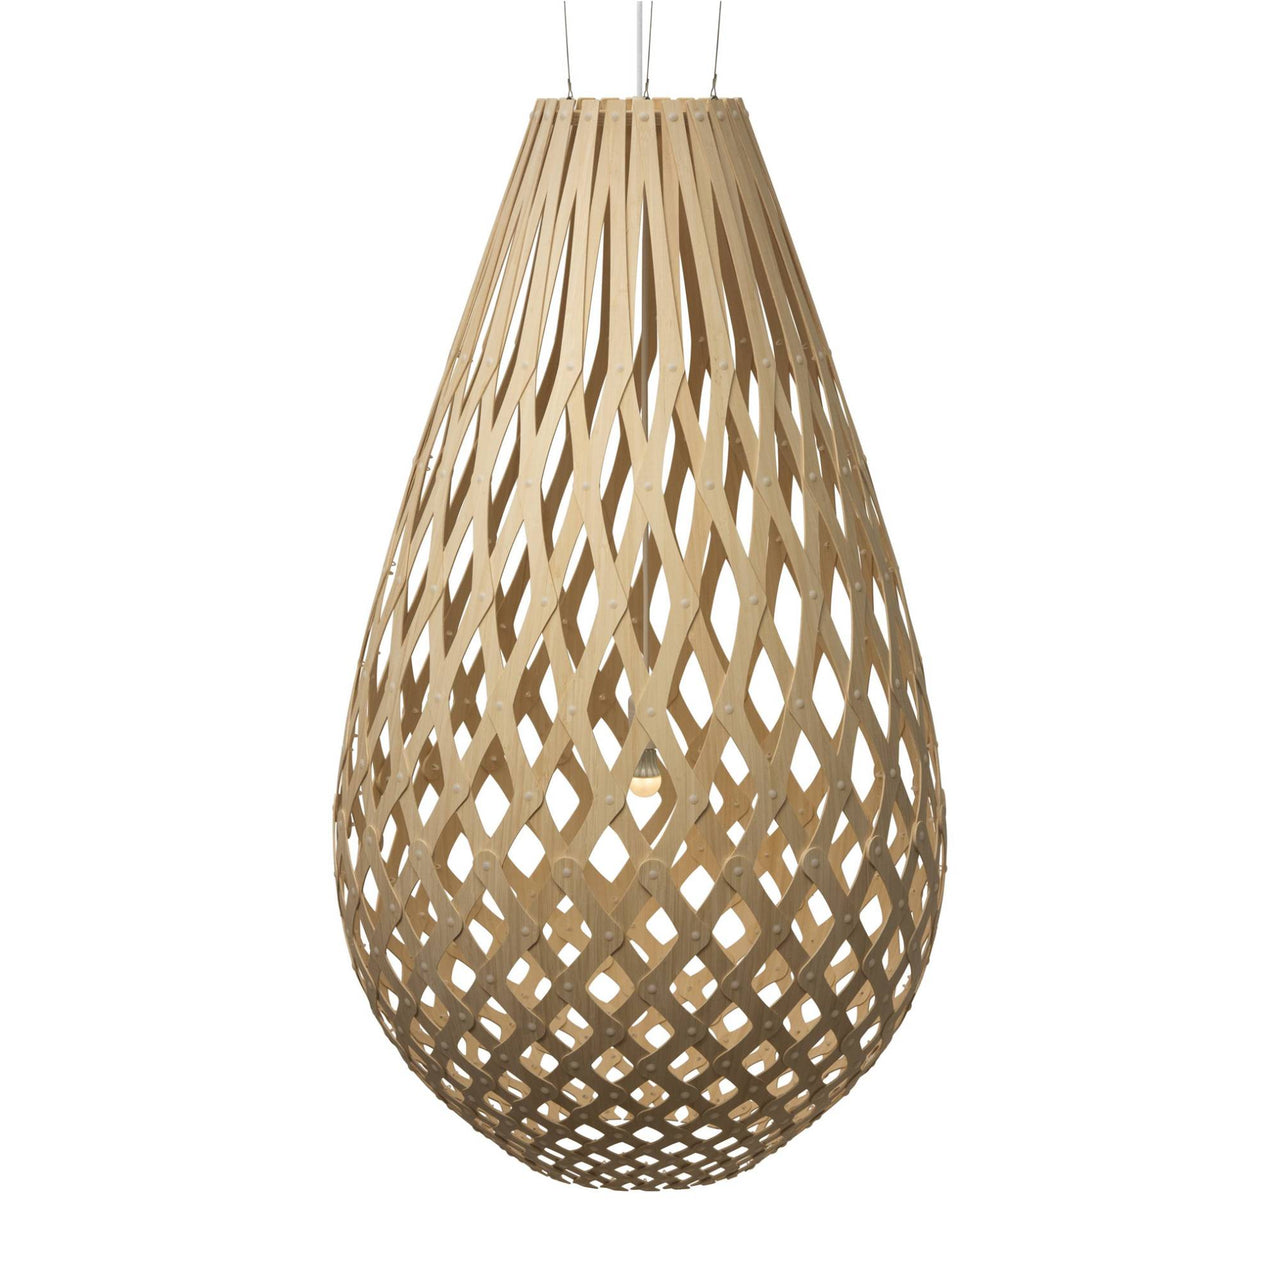 Koura Pendant Light: 2000 + Natural